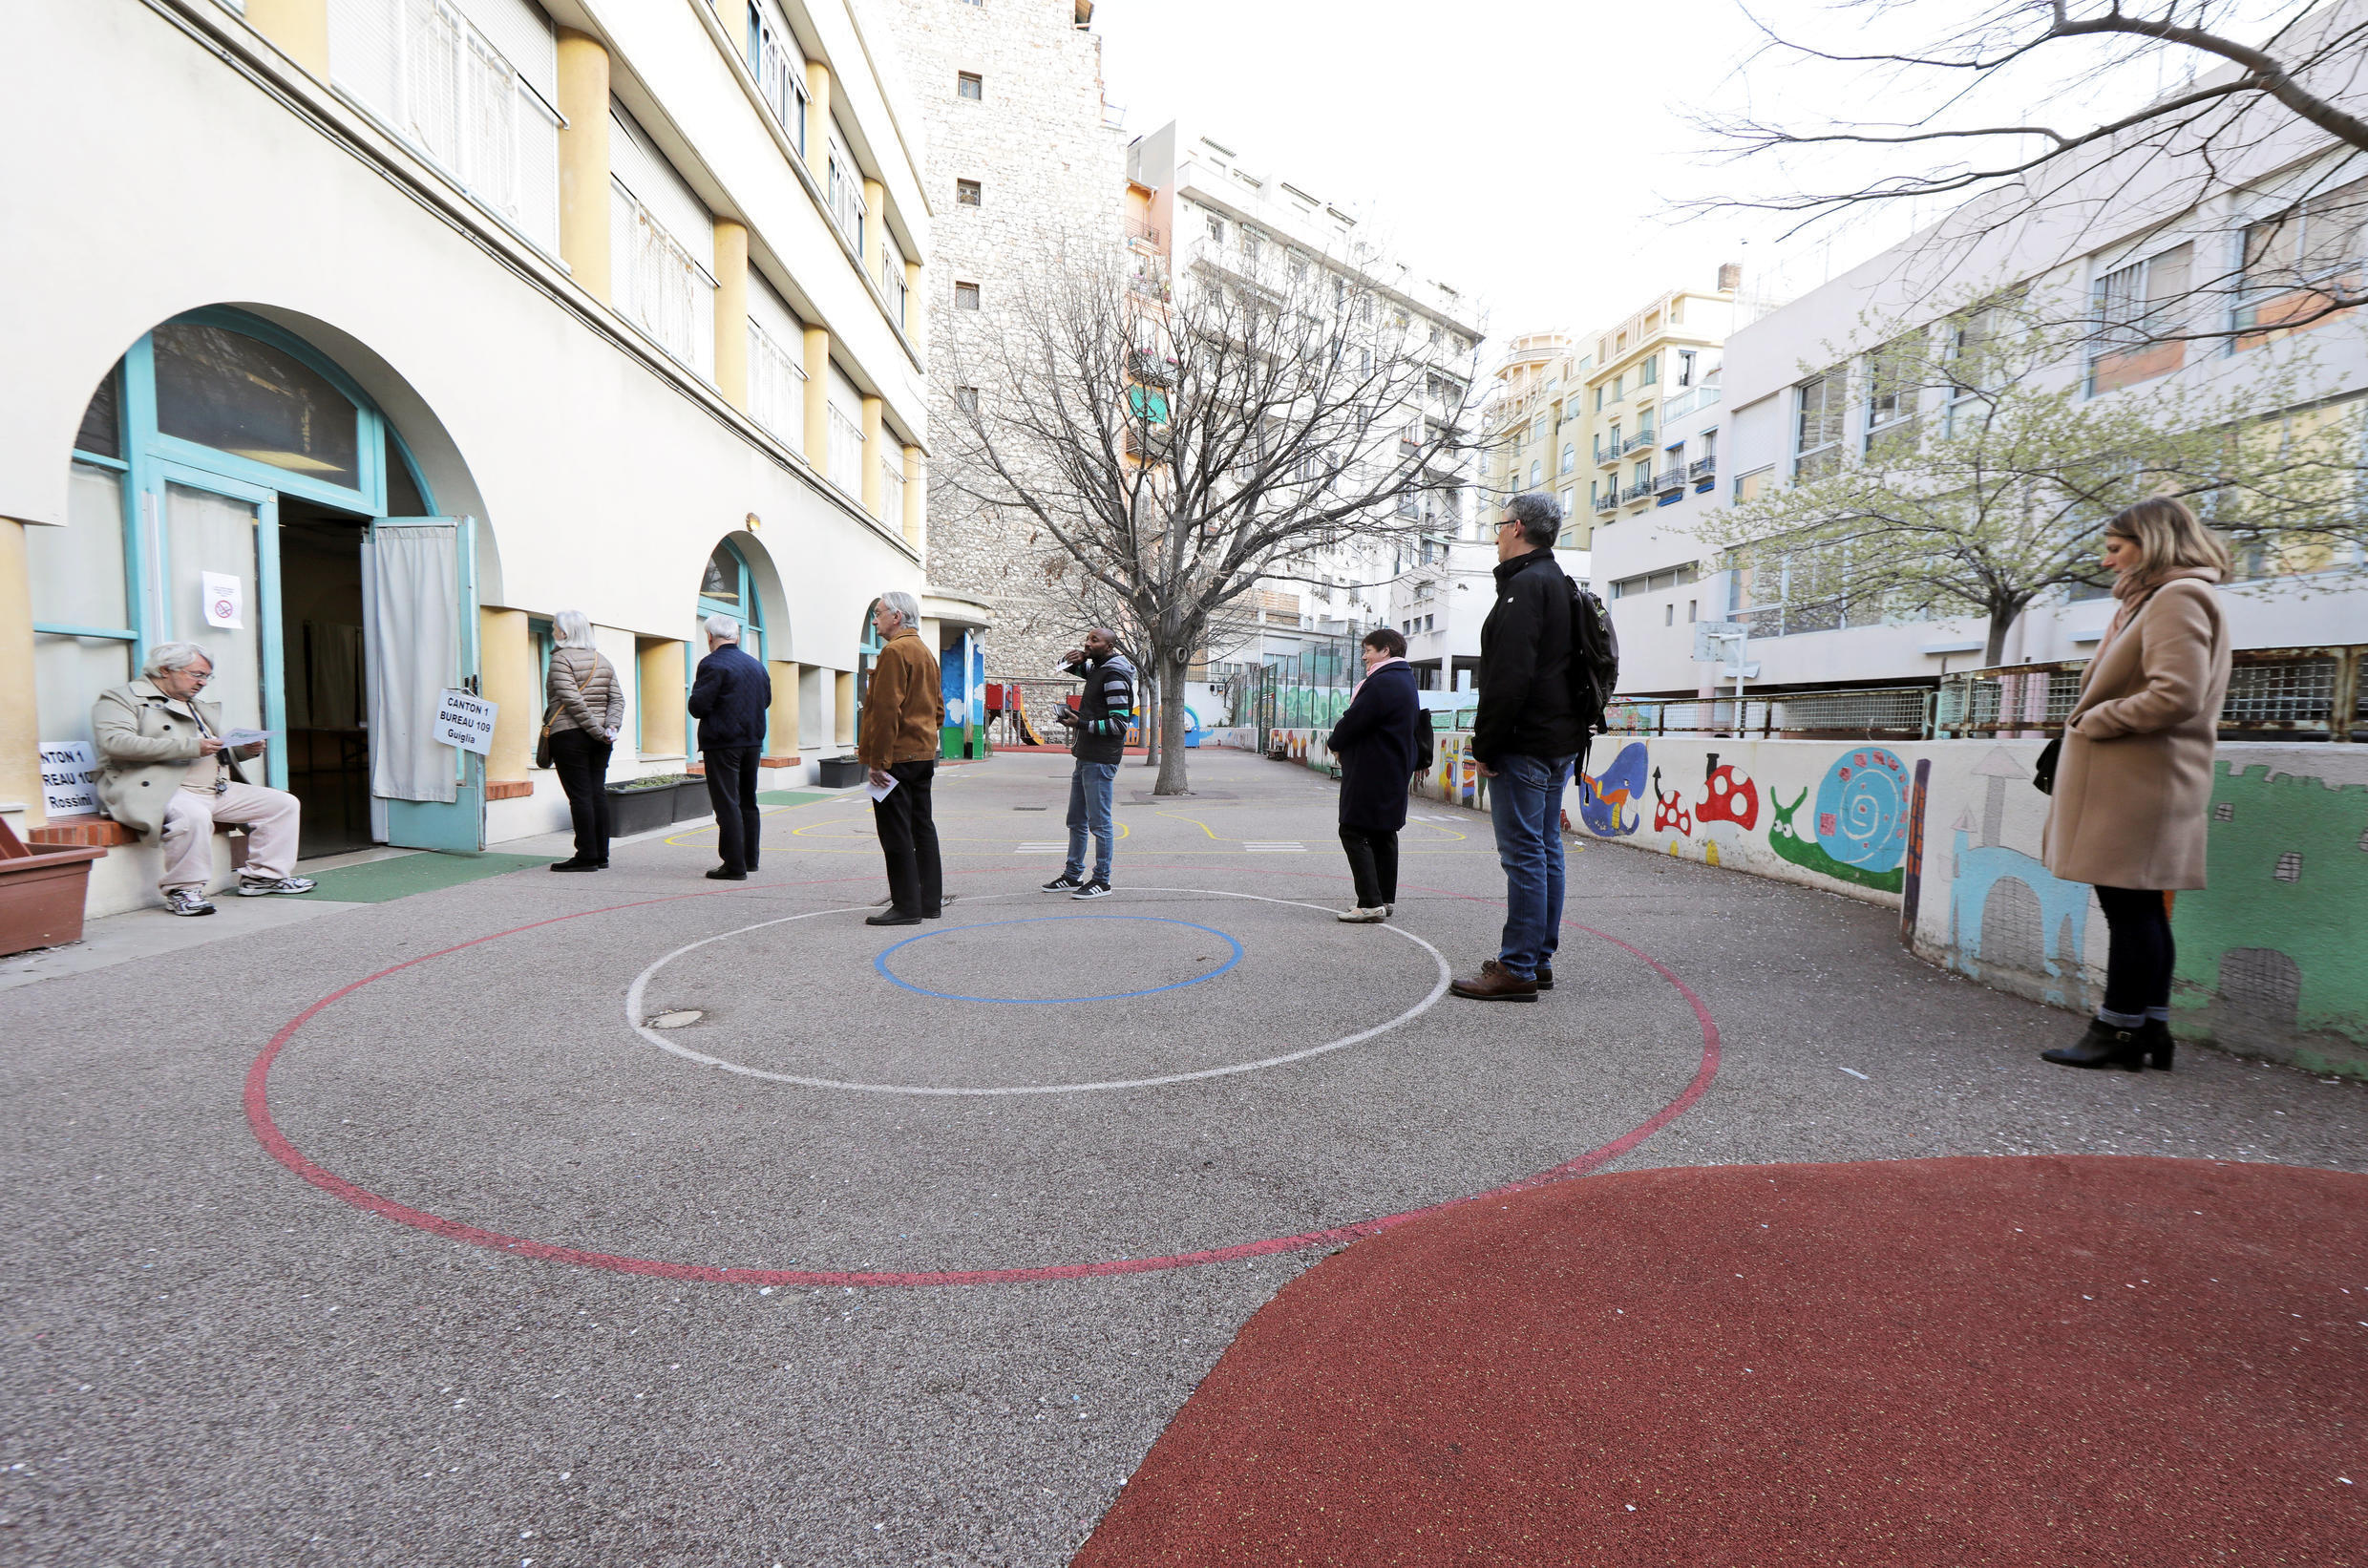 Voters keep their distance while voting in municipal elections in Nice.